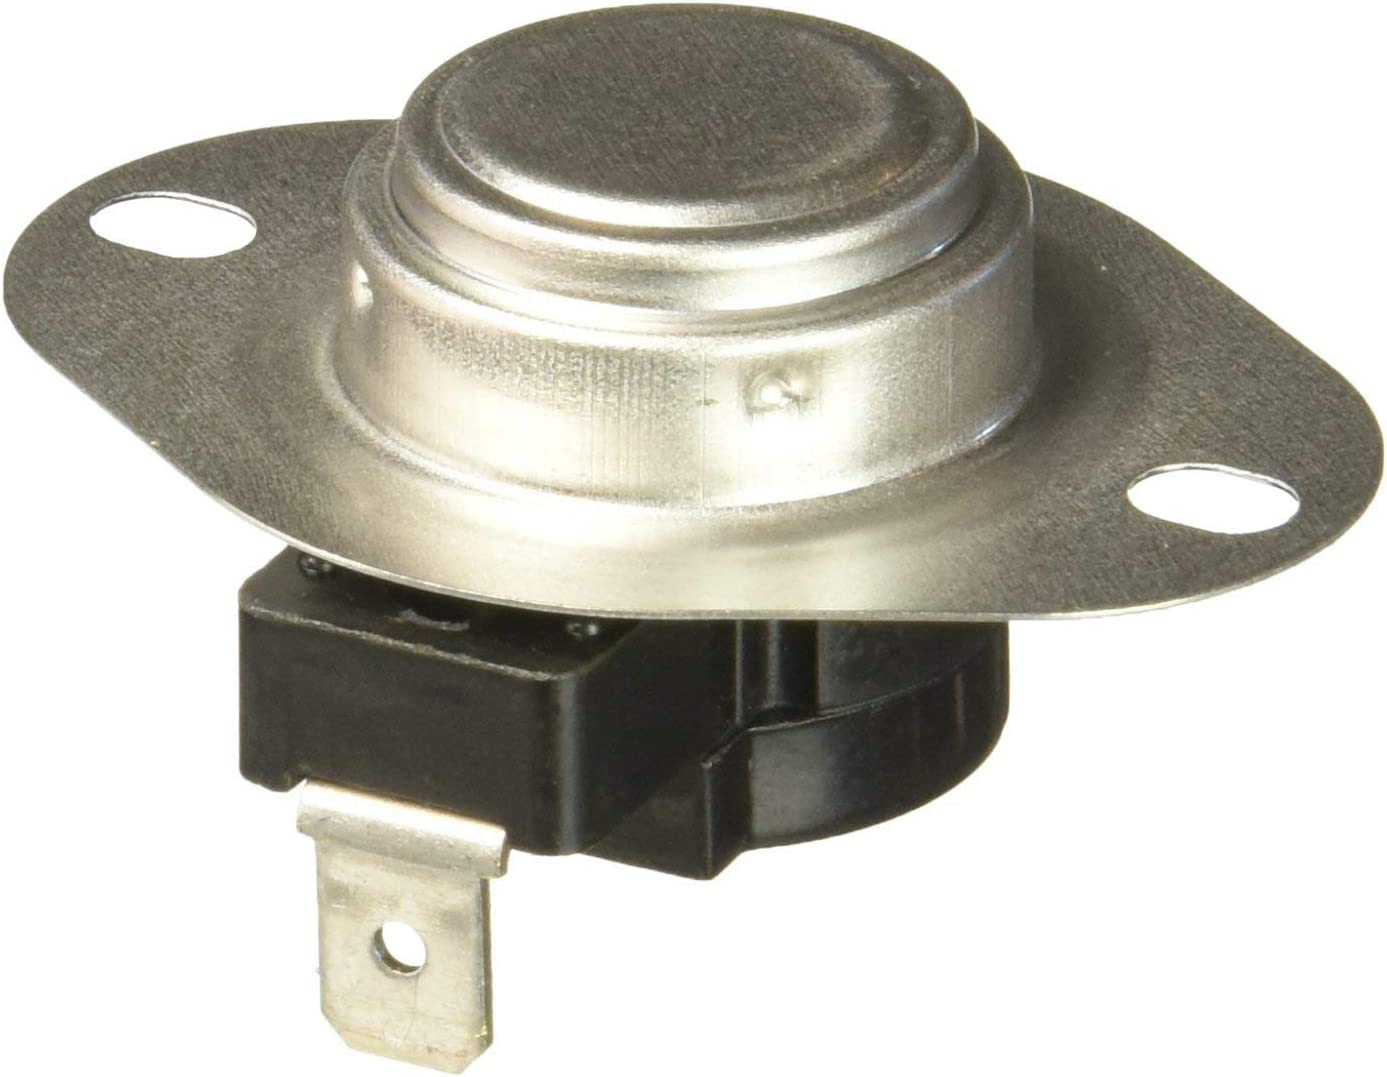 『Enterpark』 Premium Quality Cost Effective Part 6931EL3001E Replacement of Thermostat for Dryer